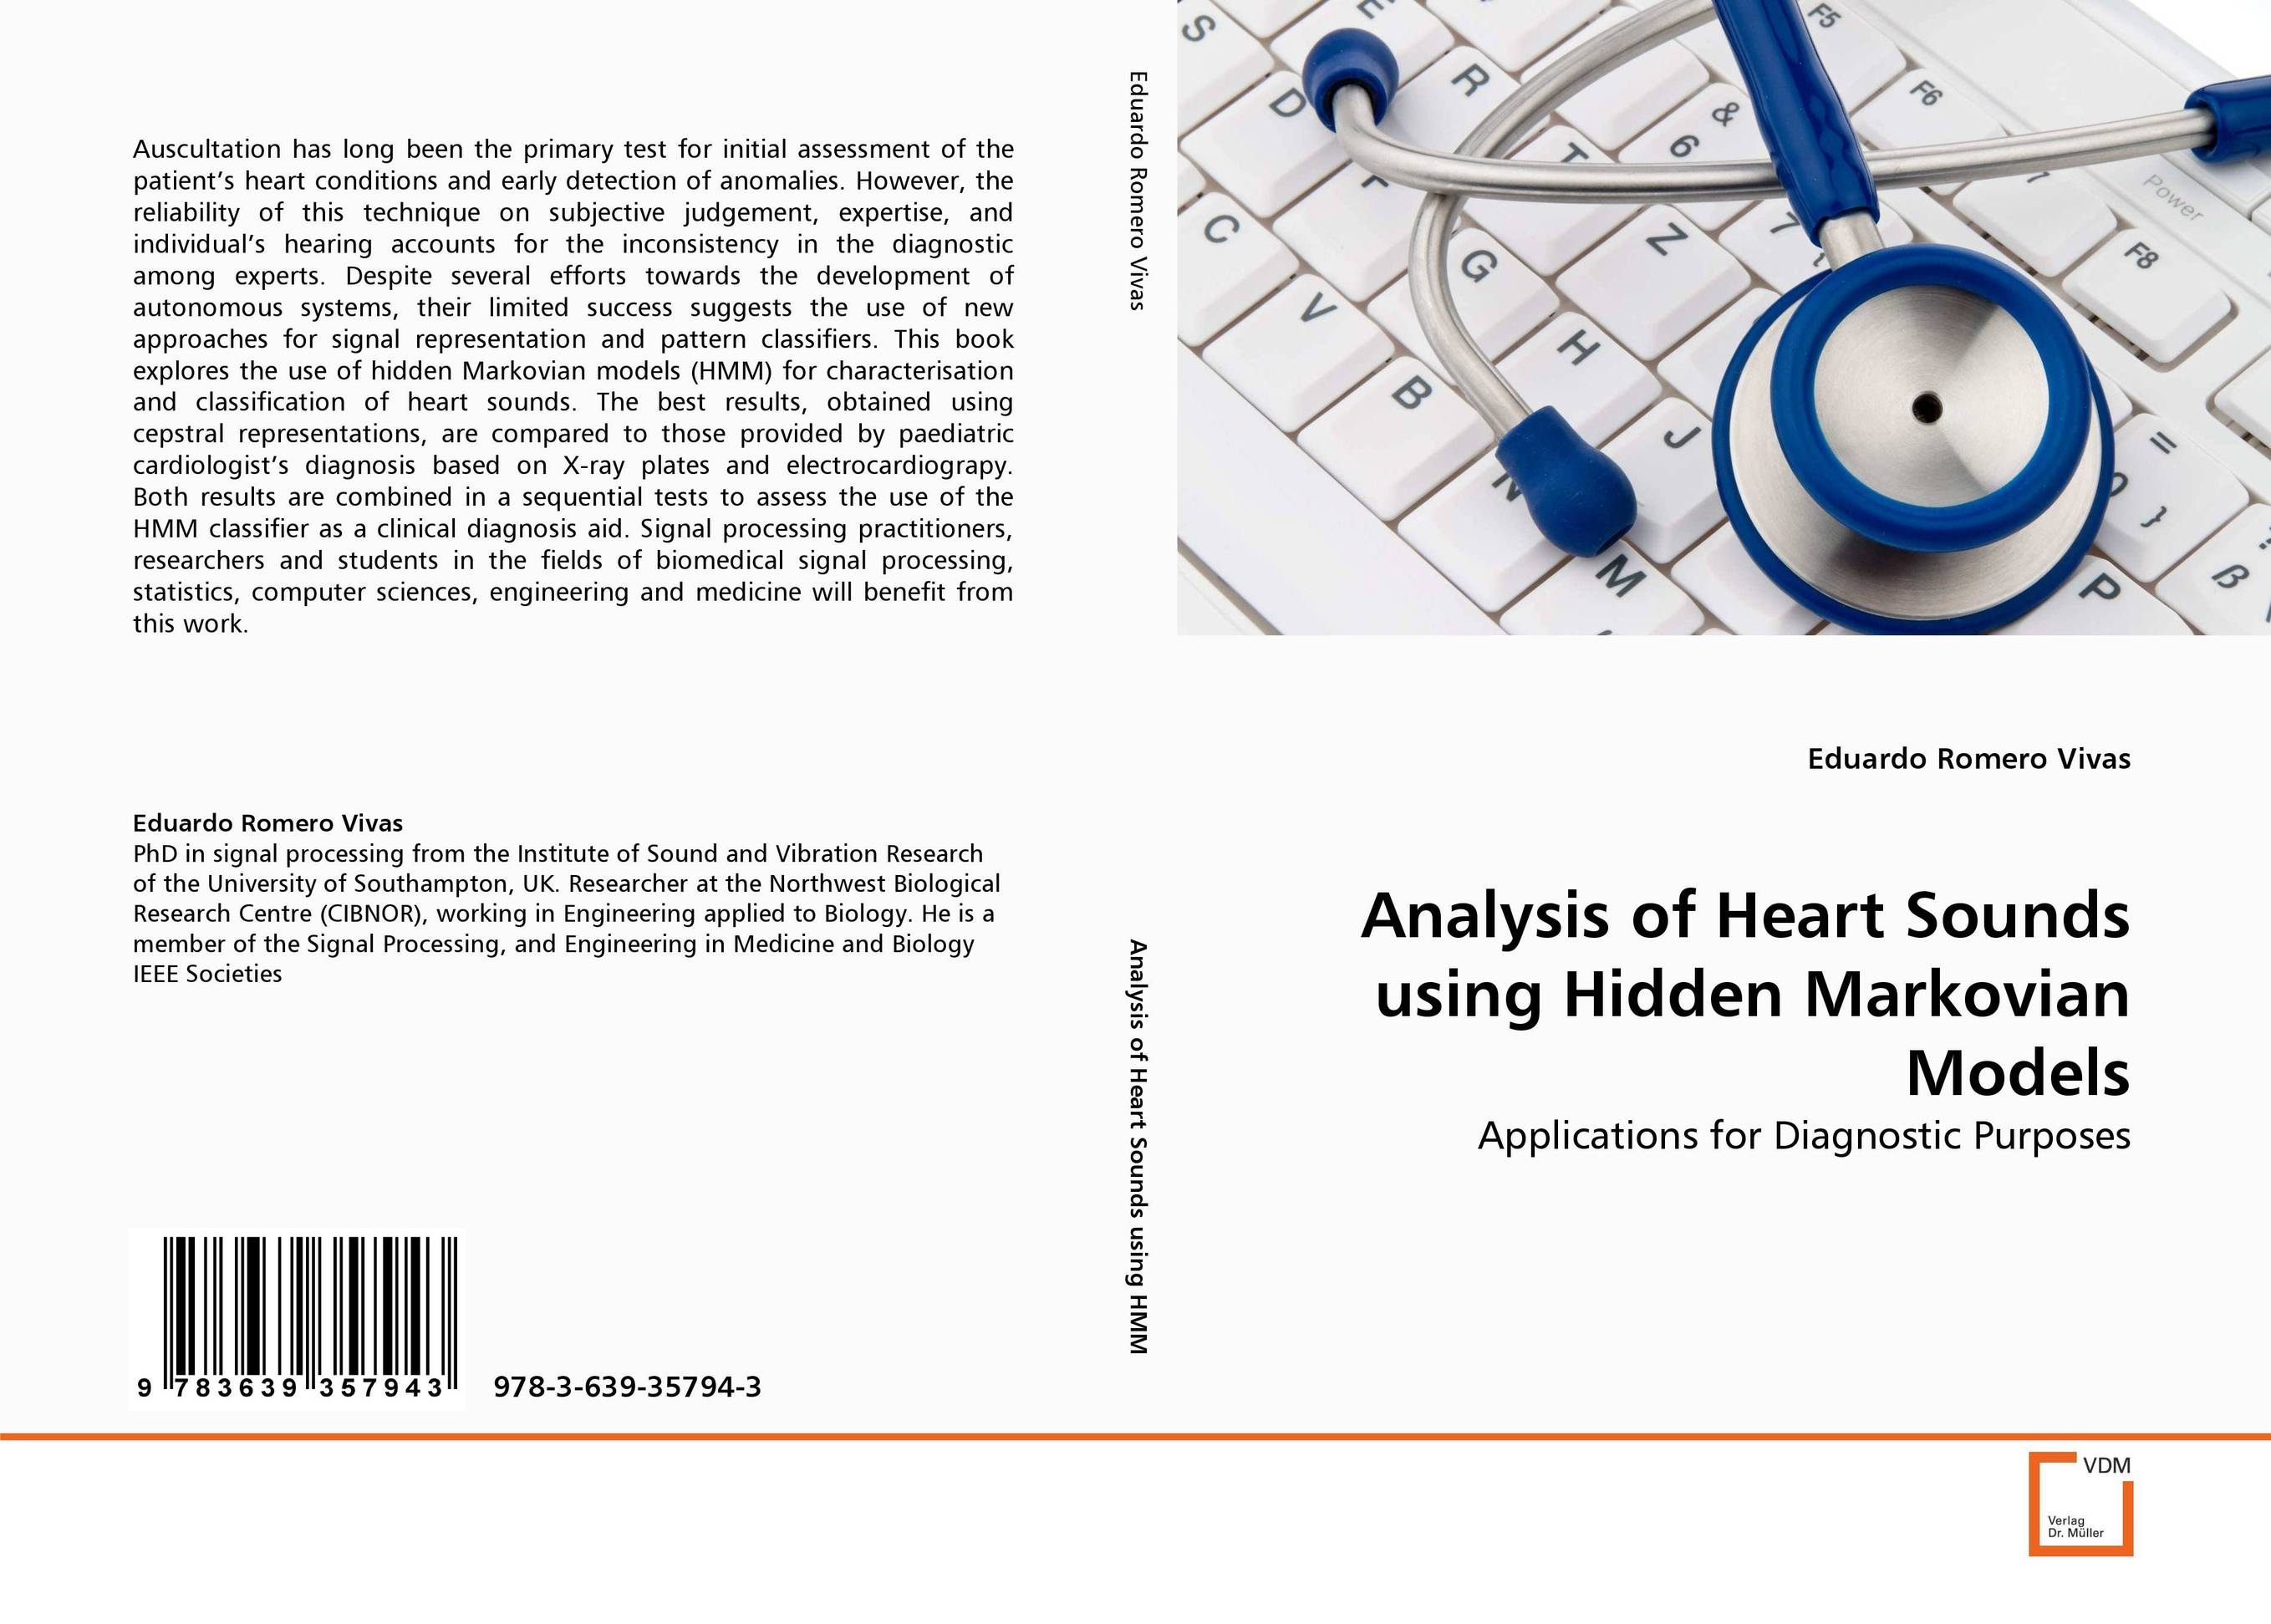 Analysis of Heart Sounds using Hidden Markovian Models analysis transform pcb board emmc analysis assay plates for test device transforming signal out to the ic in socket